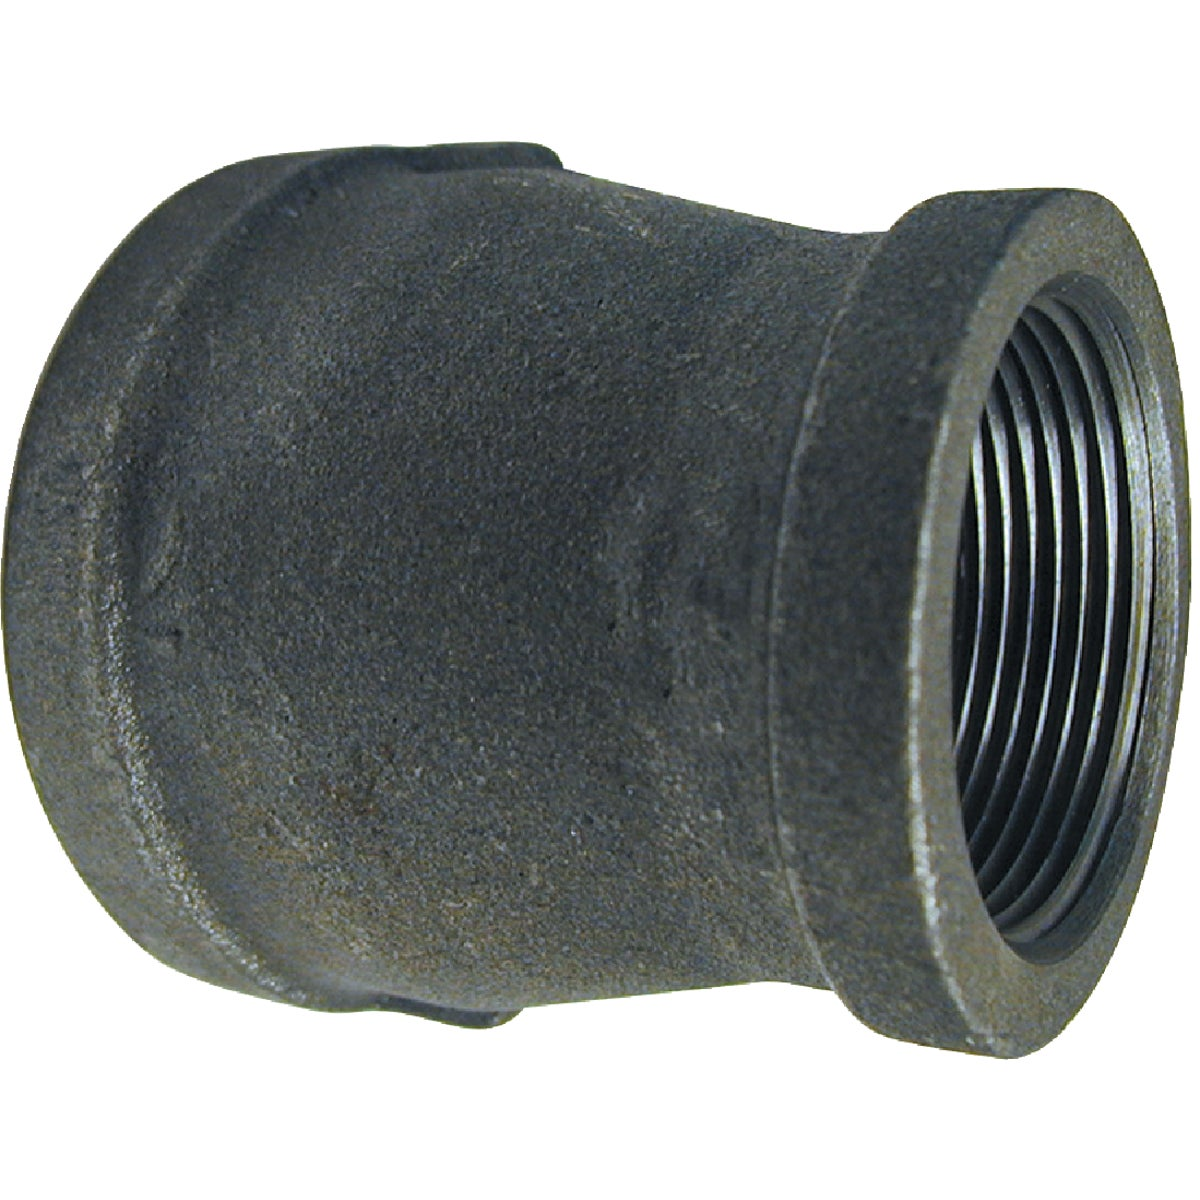 1-1/2X1 BLACK COUPLING - 521-375BG by Mueller B K